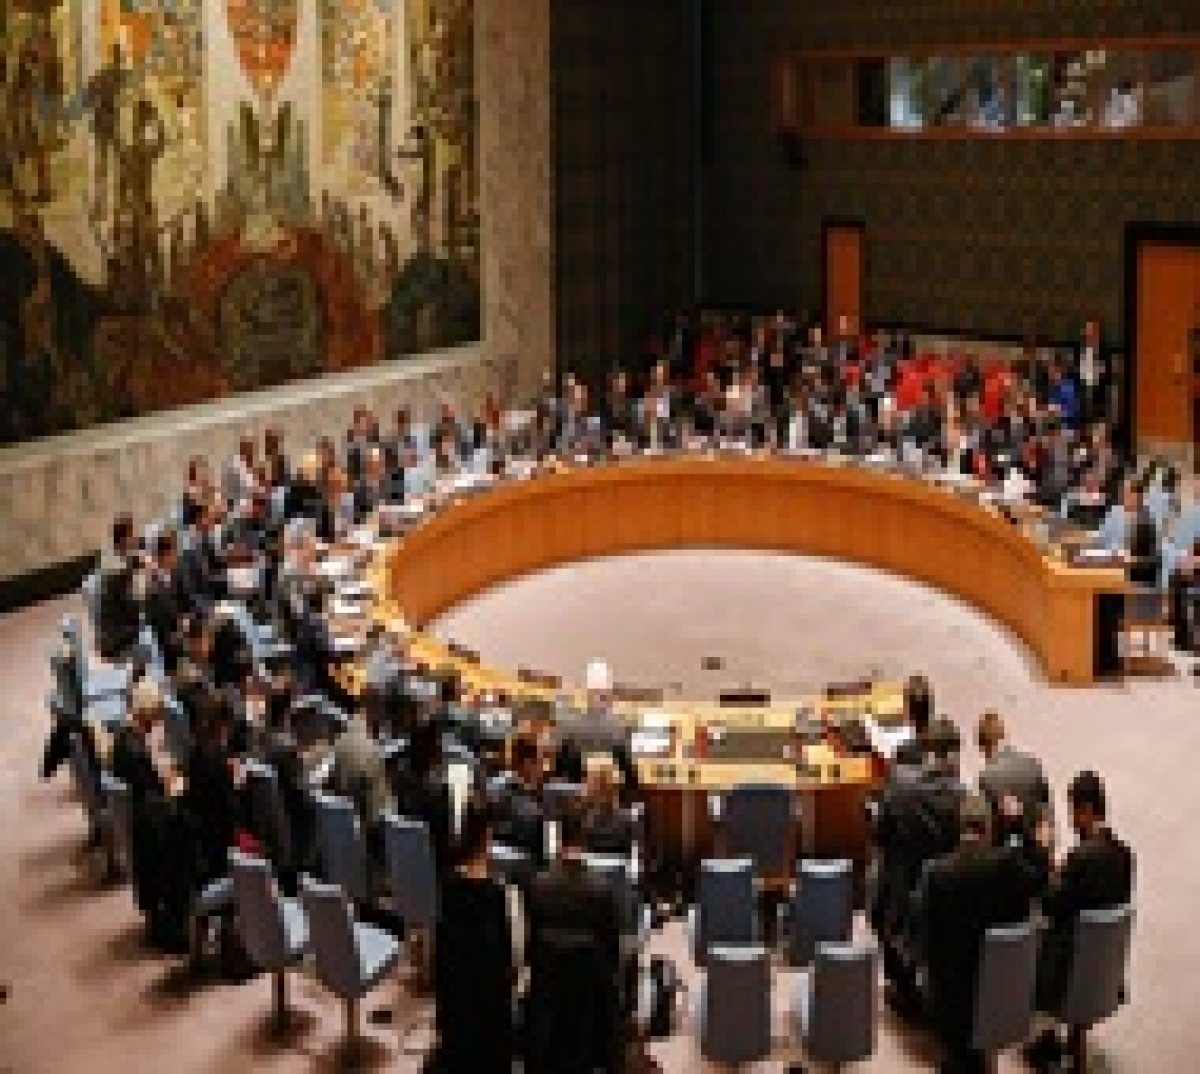 Want UNSC reform to reflect 'aspirations of all': Pakistan